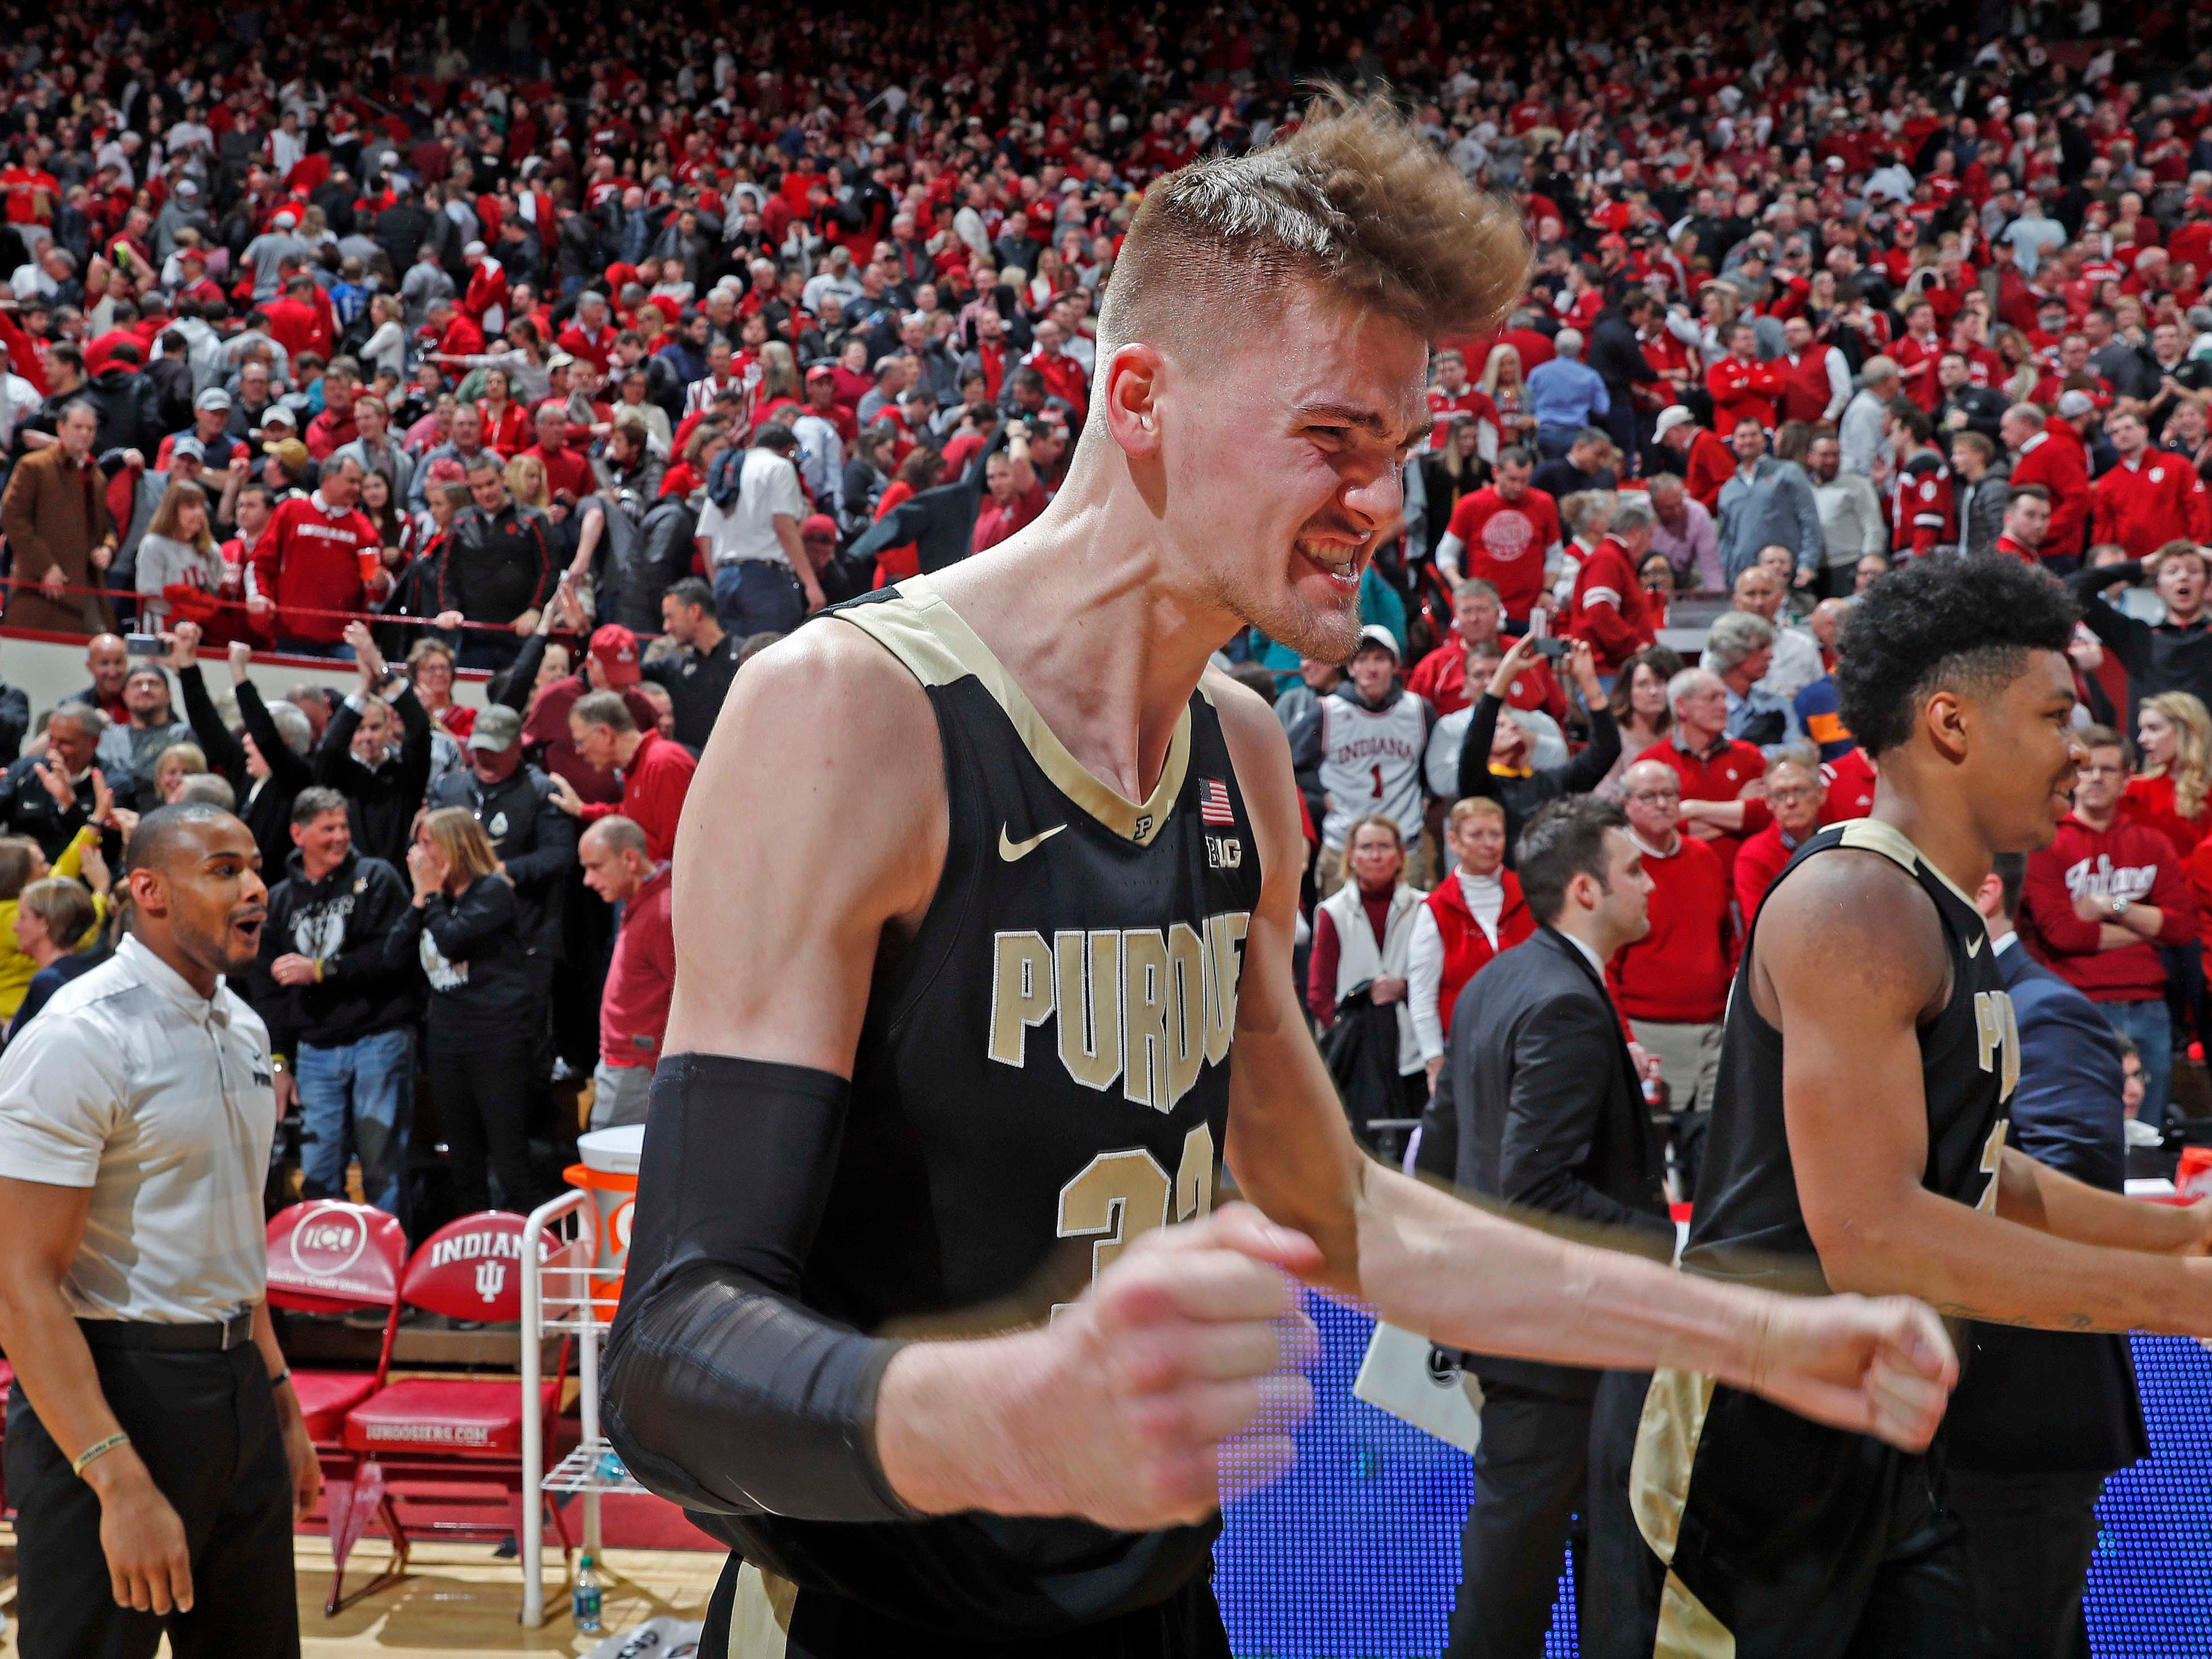 Purdue center Matt Haarms (32) reacts after hitting the game-winning shot against Indiana as stunned Hoosiers fans look on.